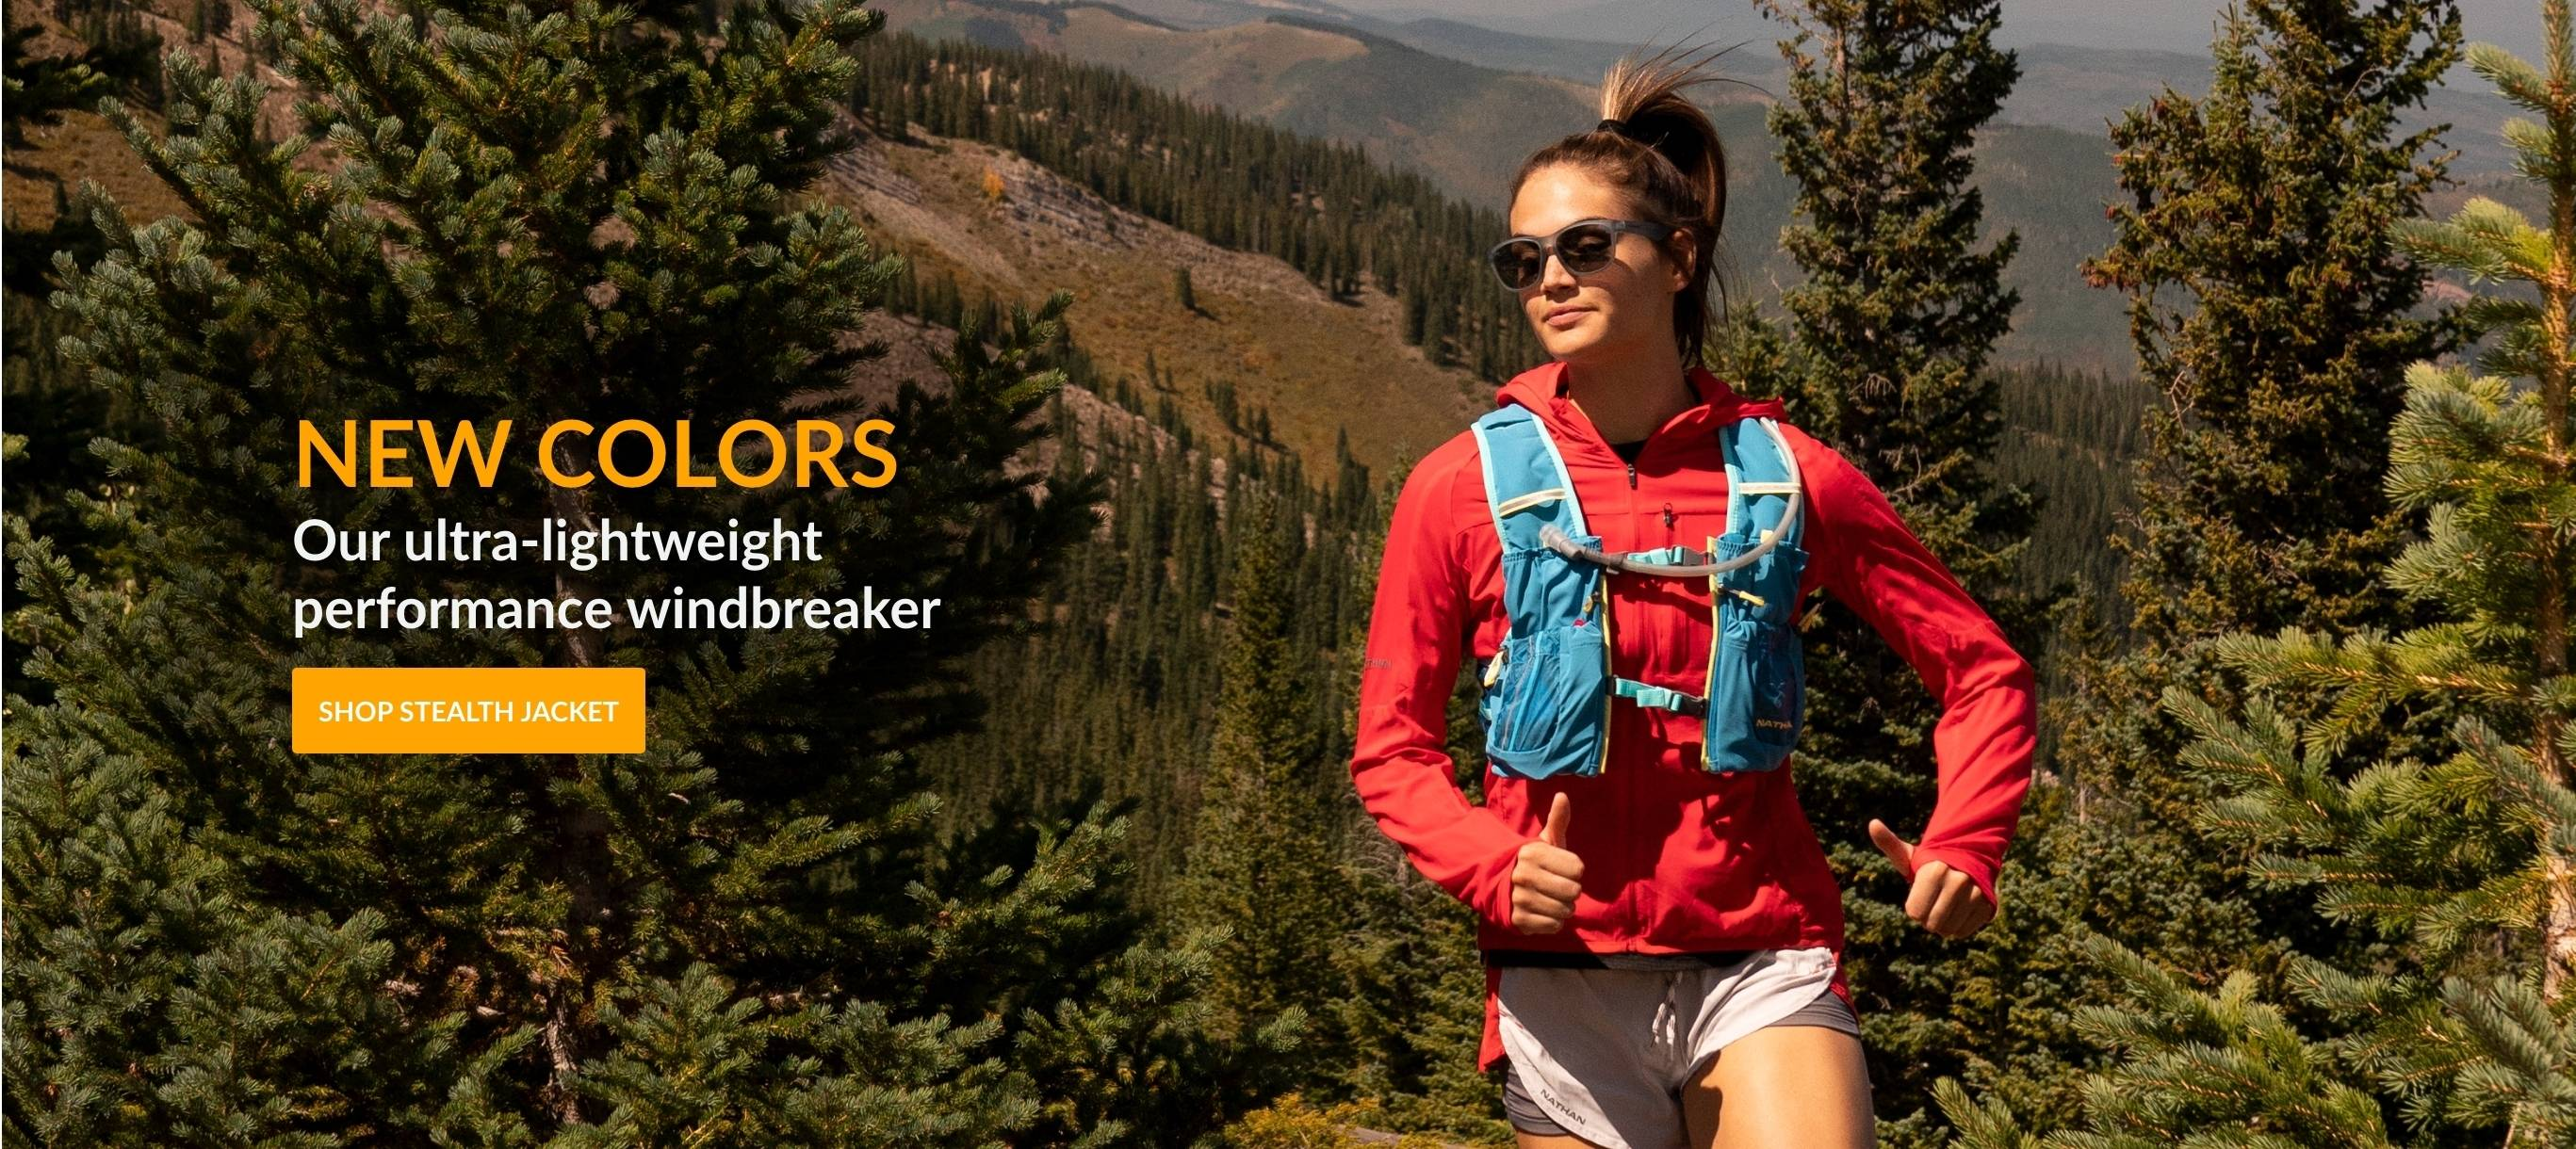 New Colors Our ultra-lightweight performance windbreaker